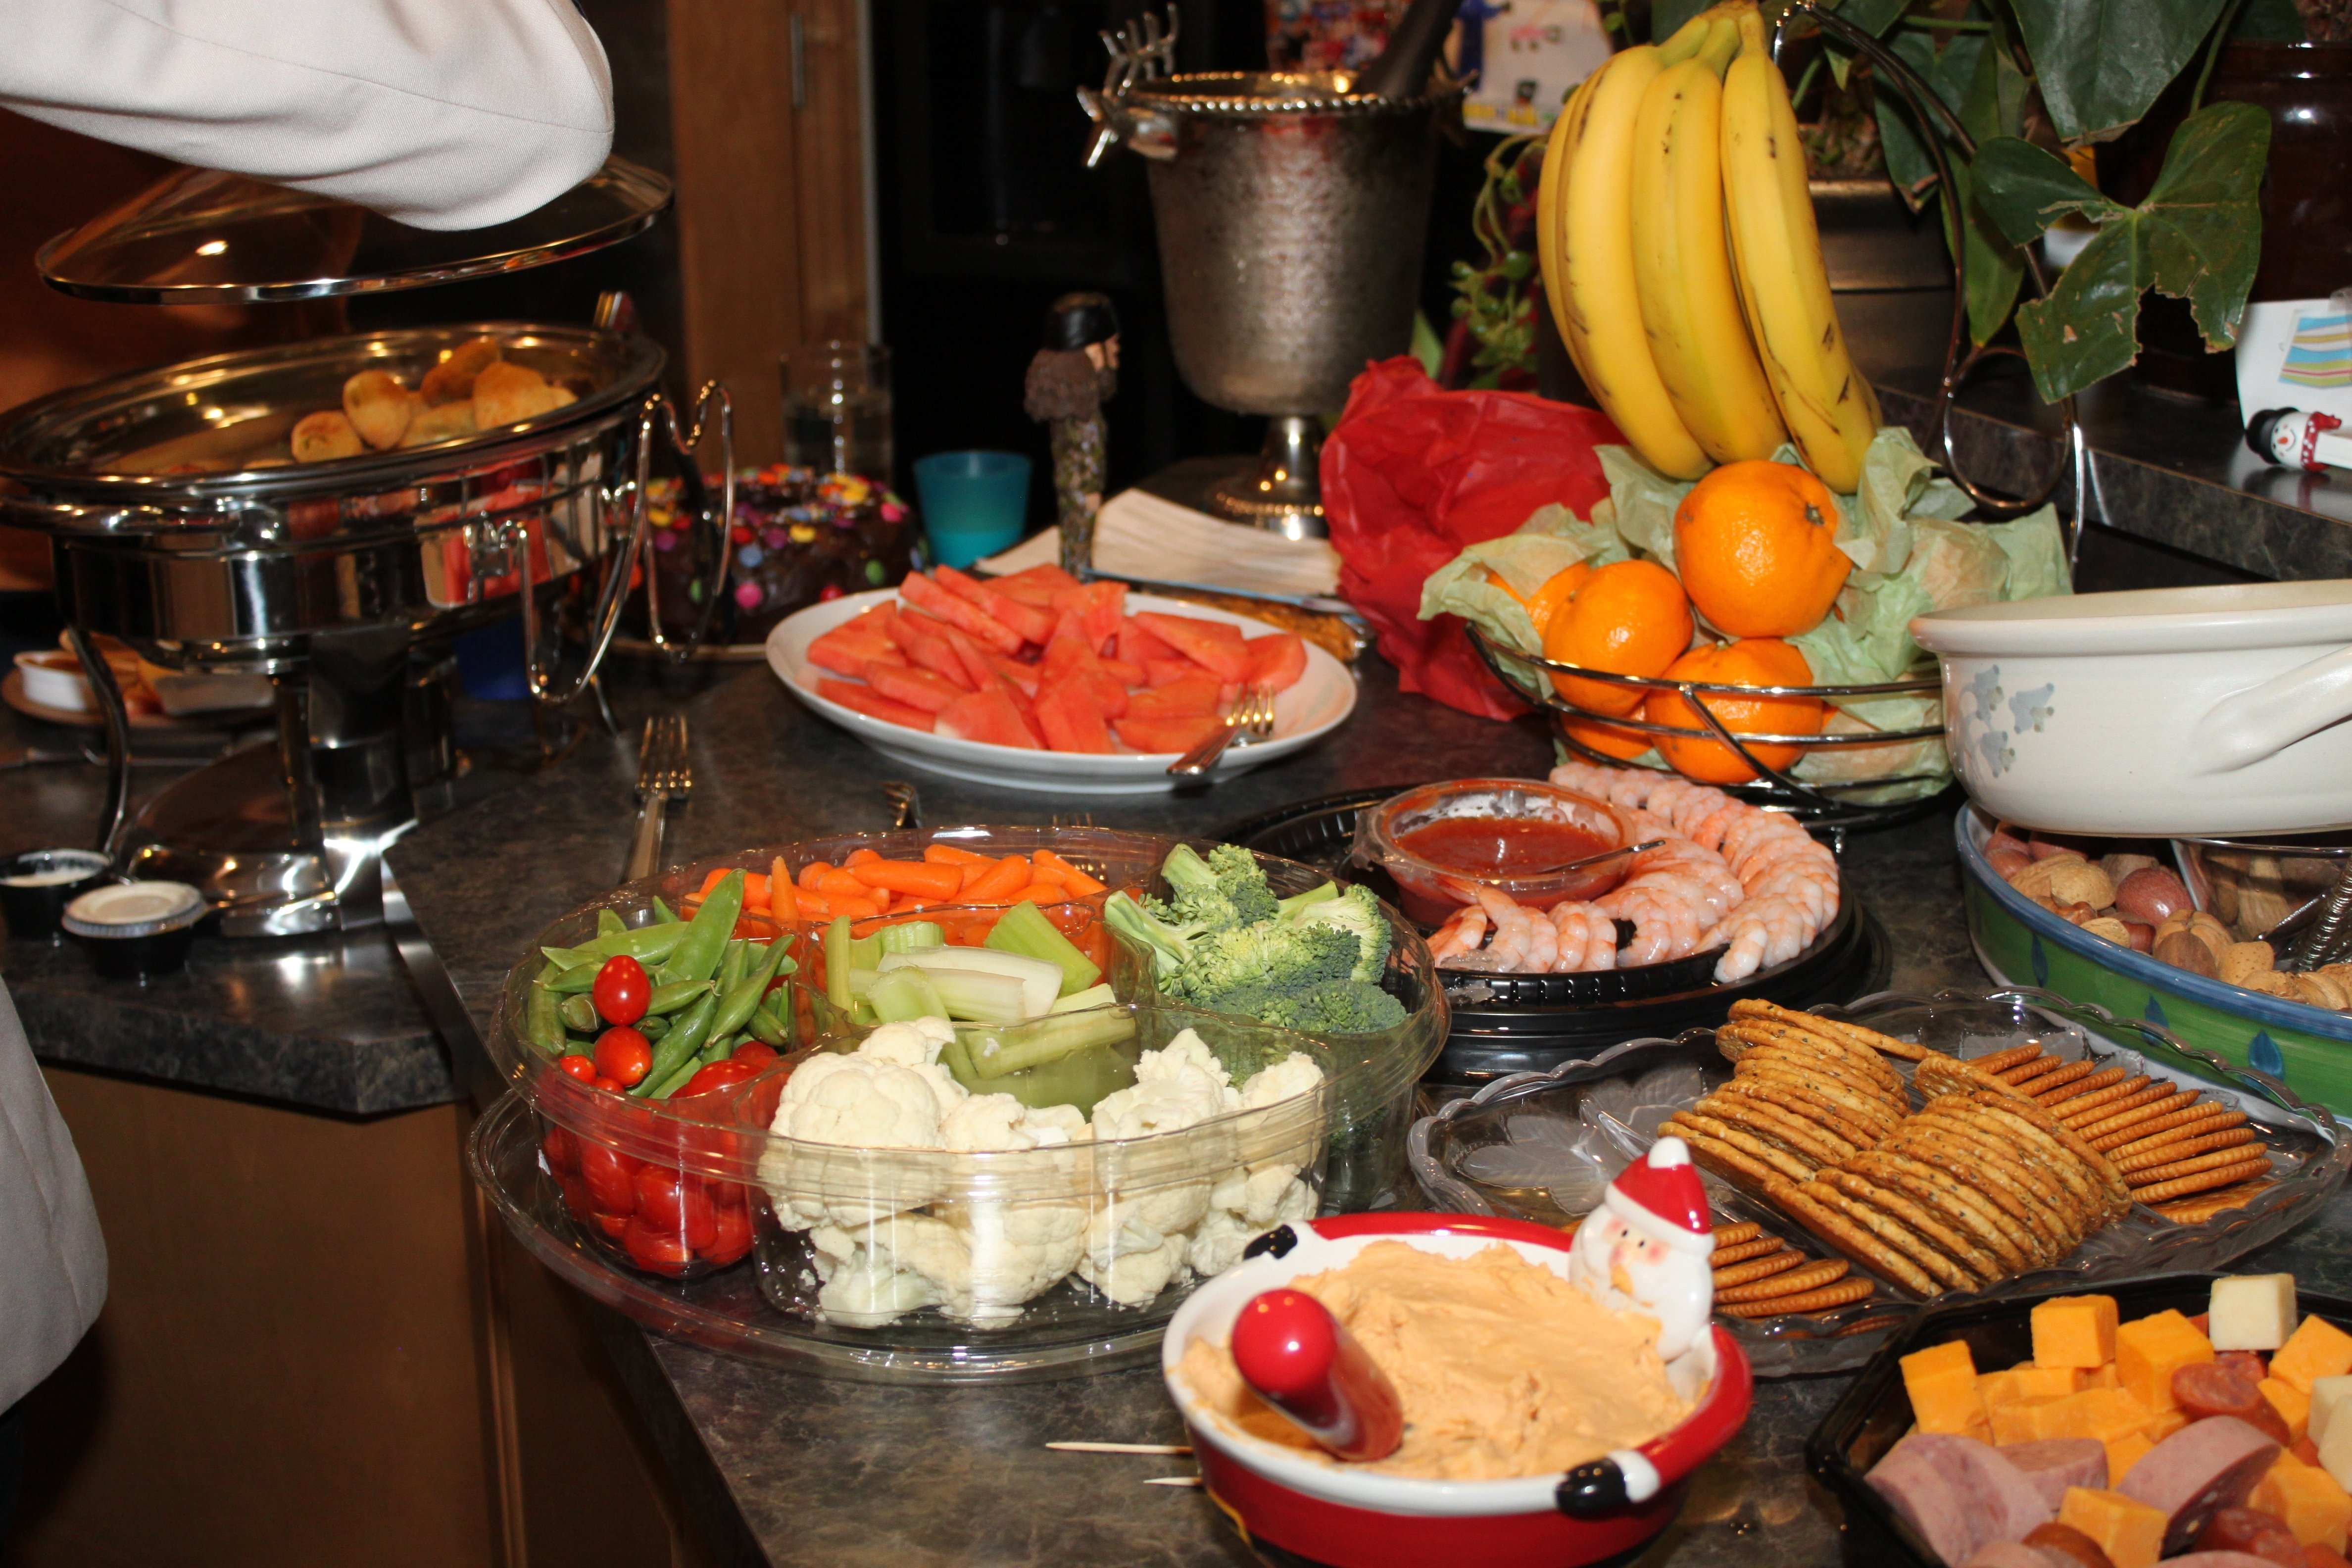 10 Stunning Family Ideas For New Years Eve years eve family party ideas 5 2020